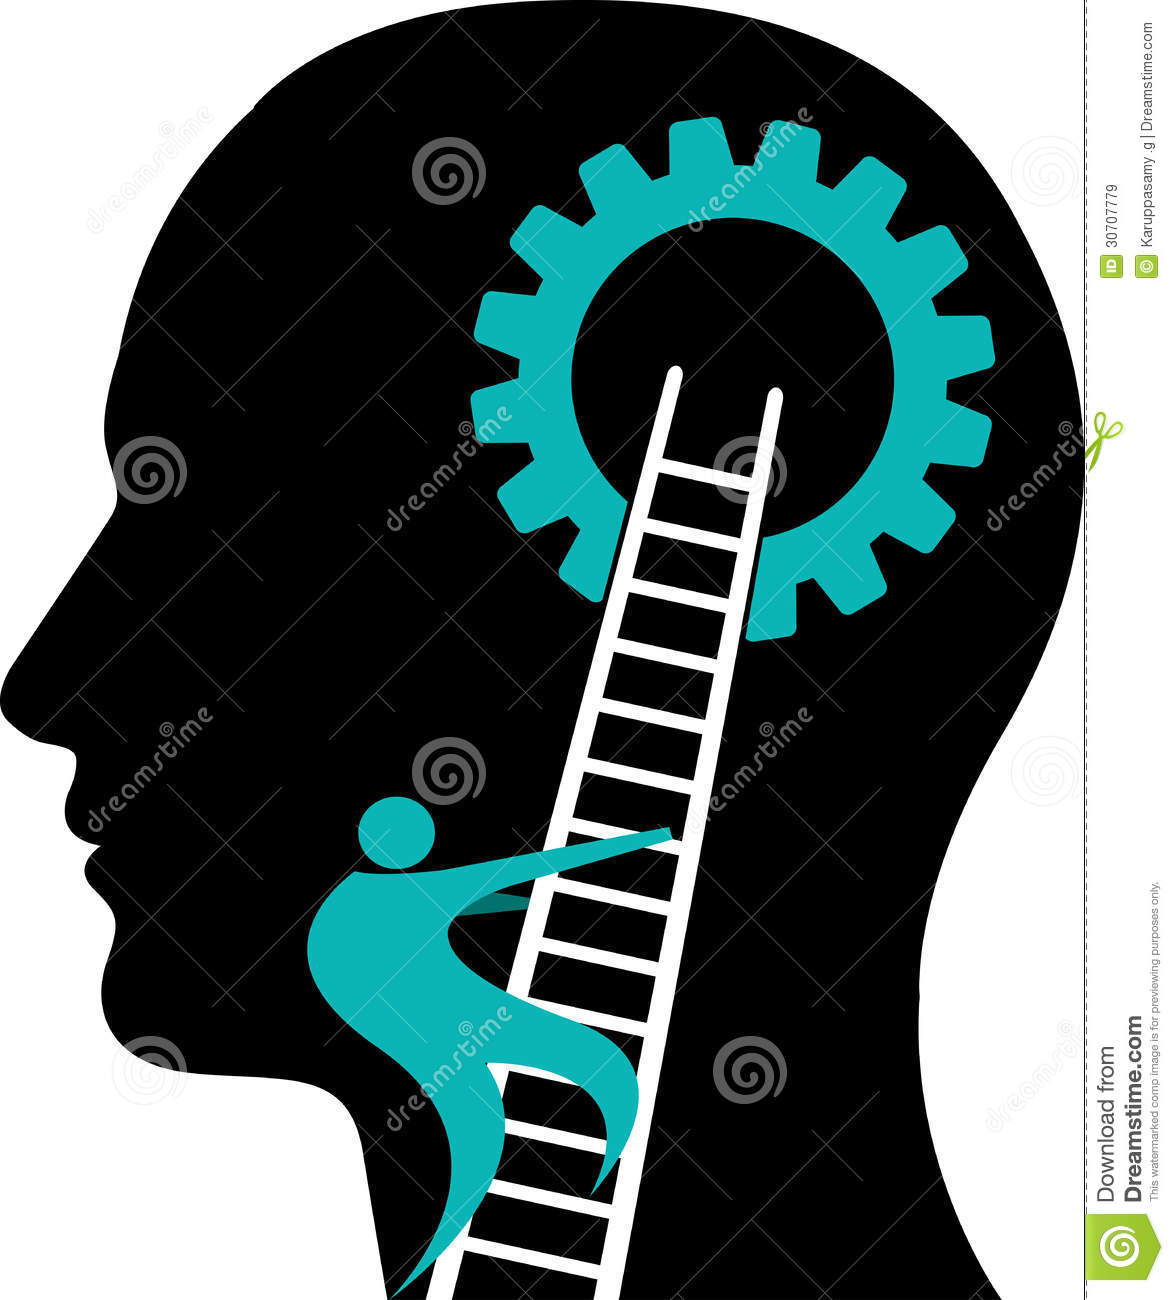 Mind Gear Logo Royalty Free Stock Images - Image: 30707779